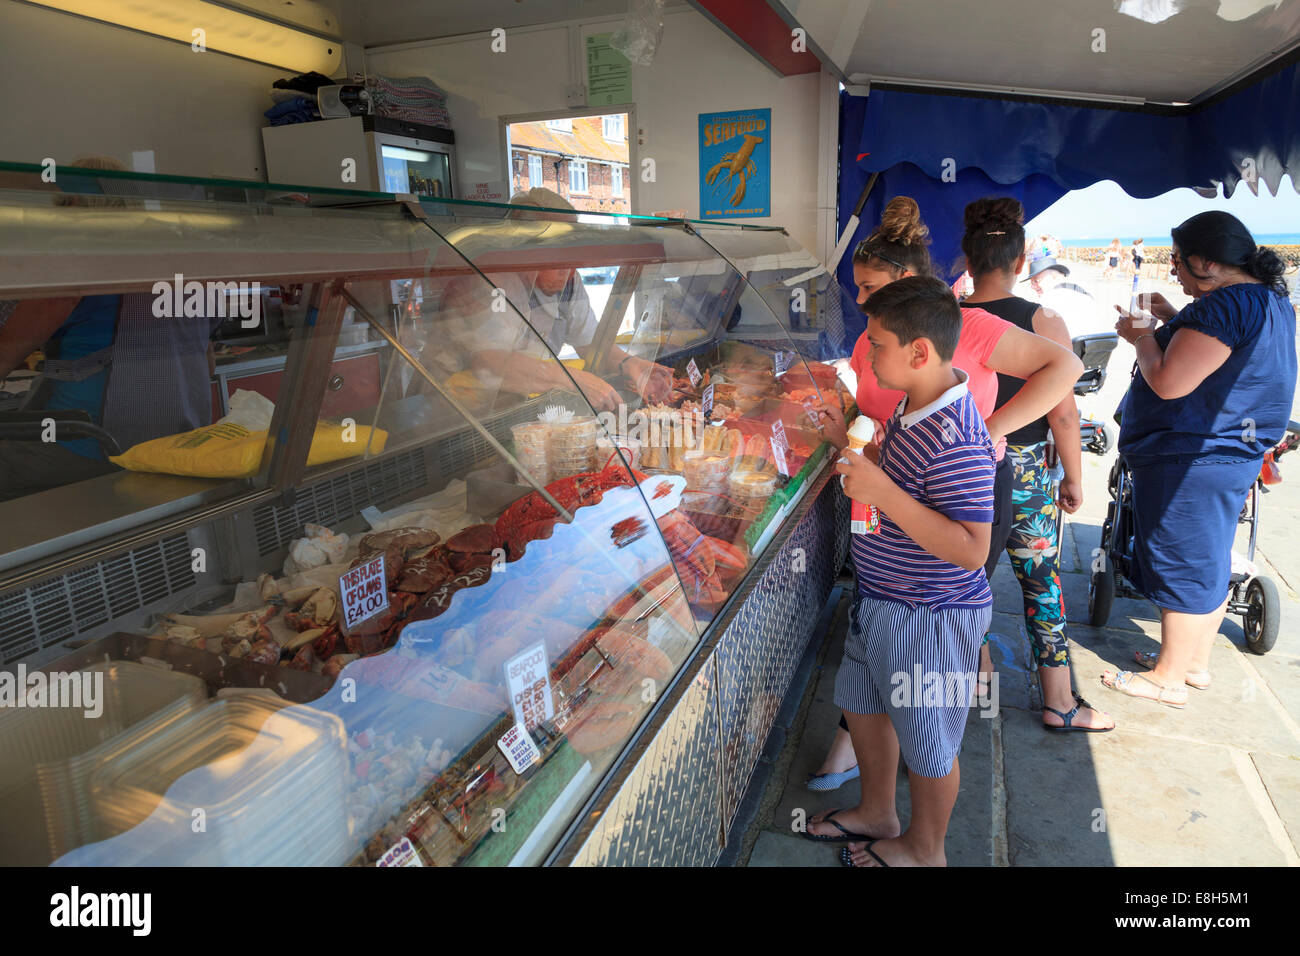 Young boy holding ice cream choosing fresh fish from a stall. - Stock Image